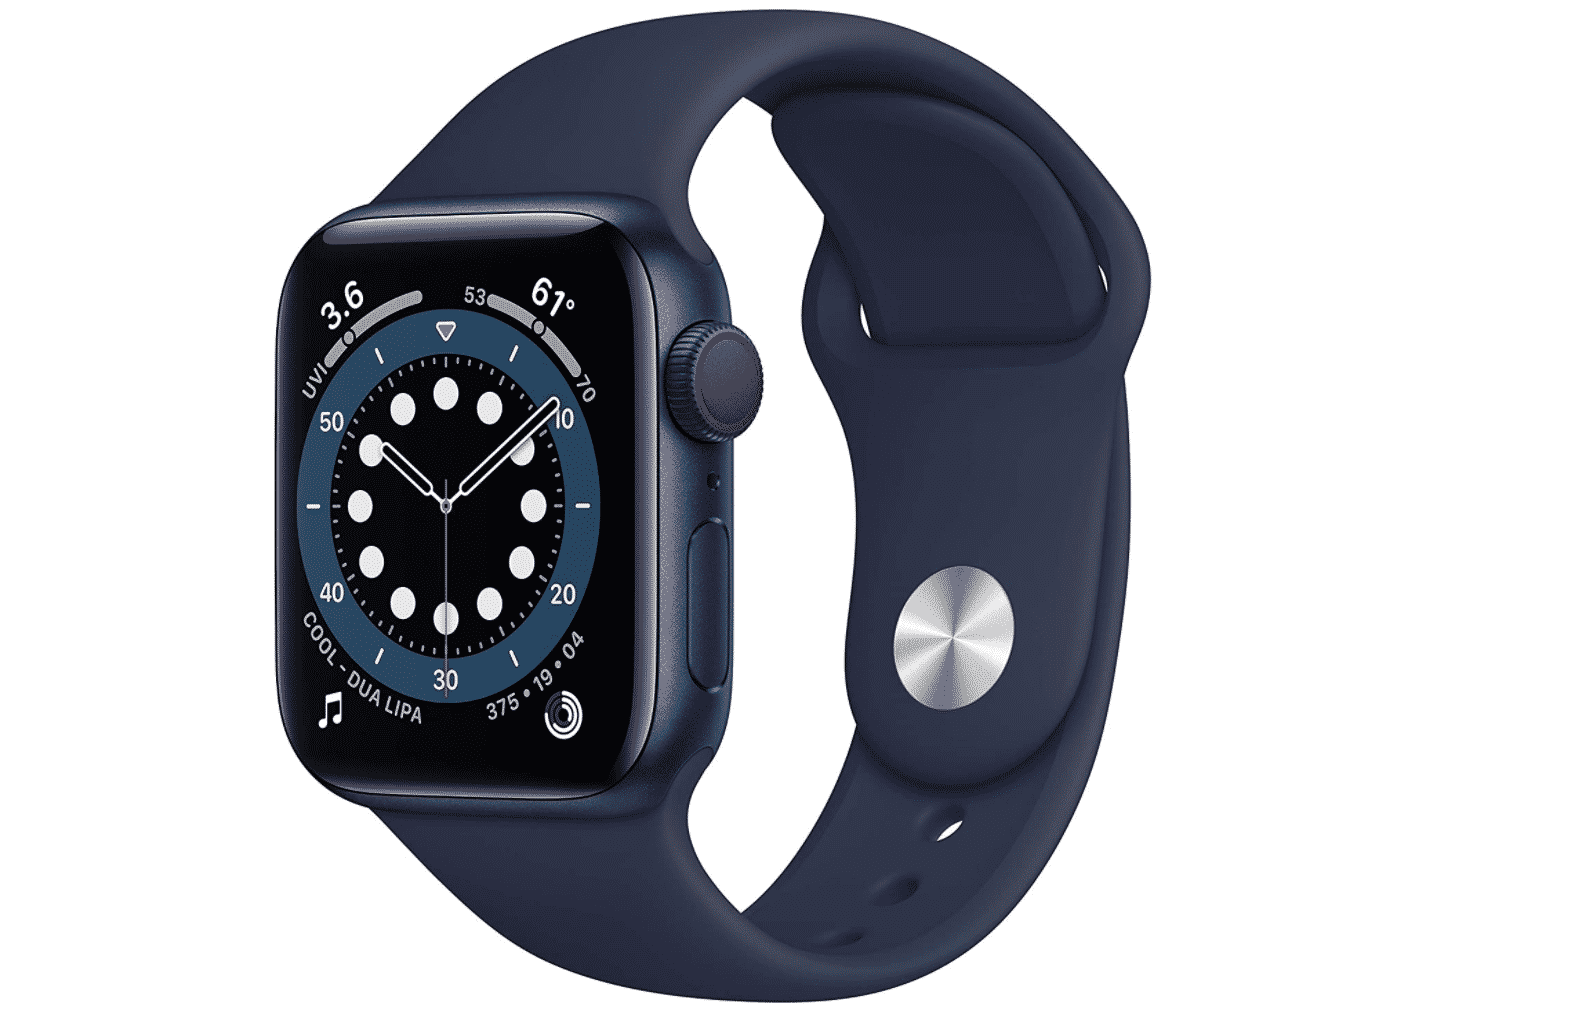 Enjoy $70 to $100 Off on the Apple Watch Series 6